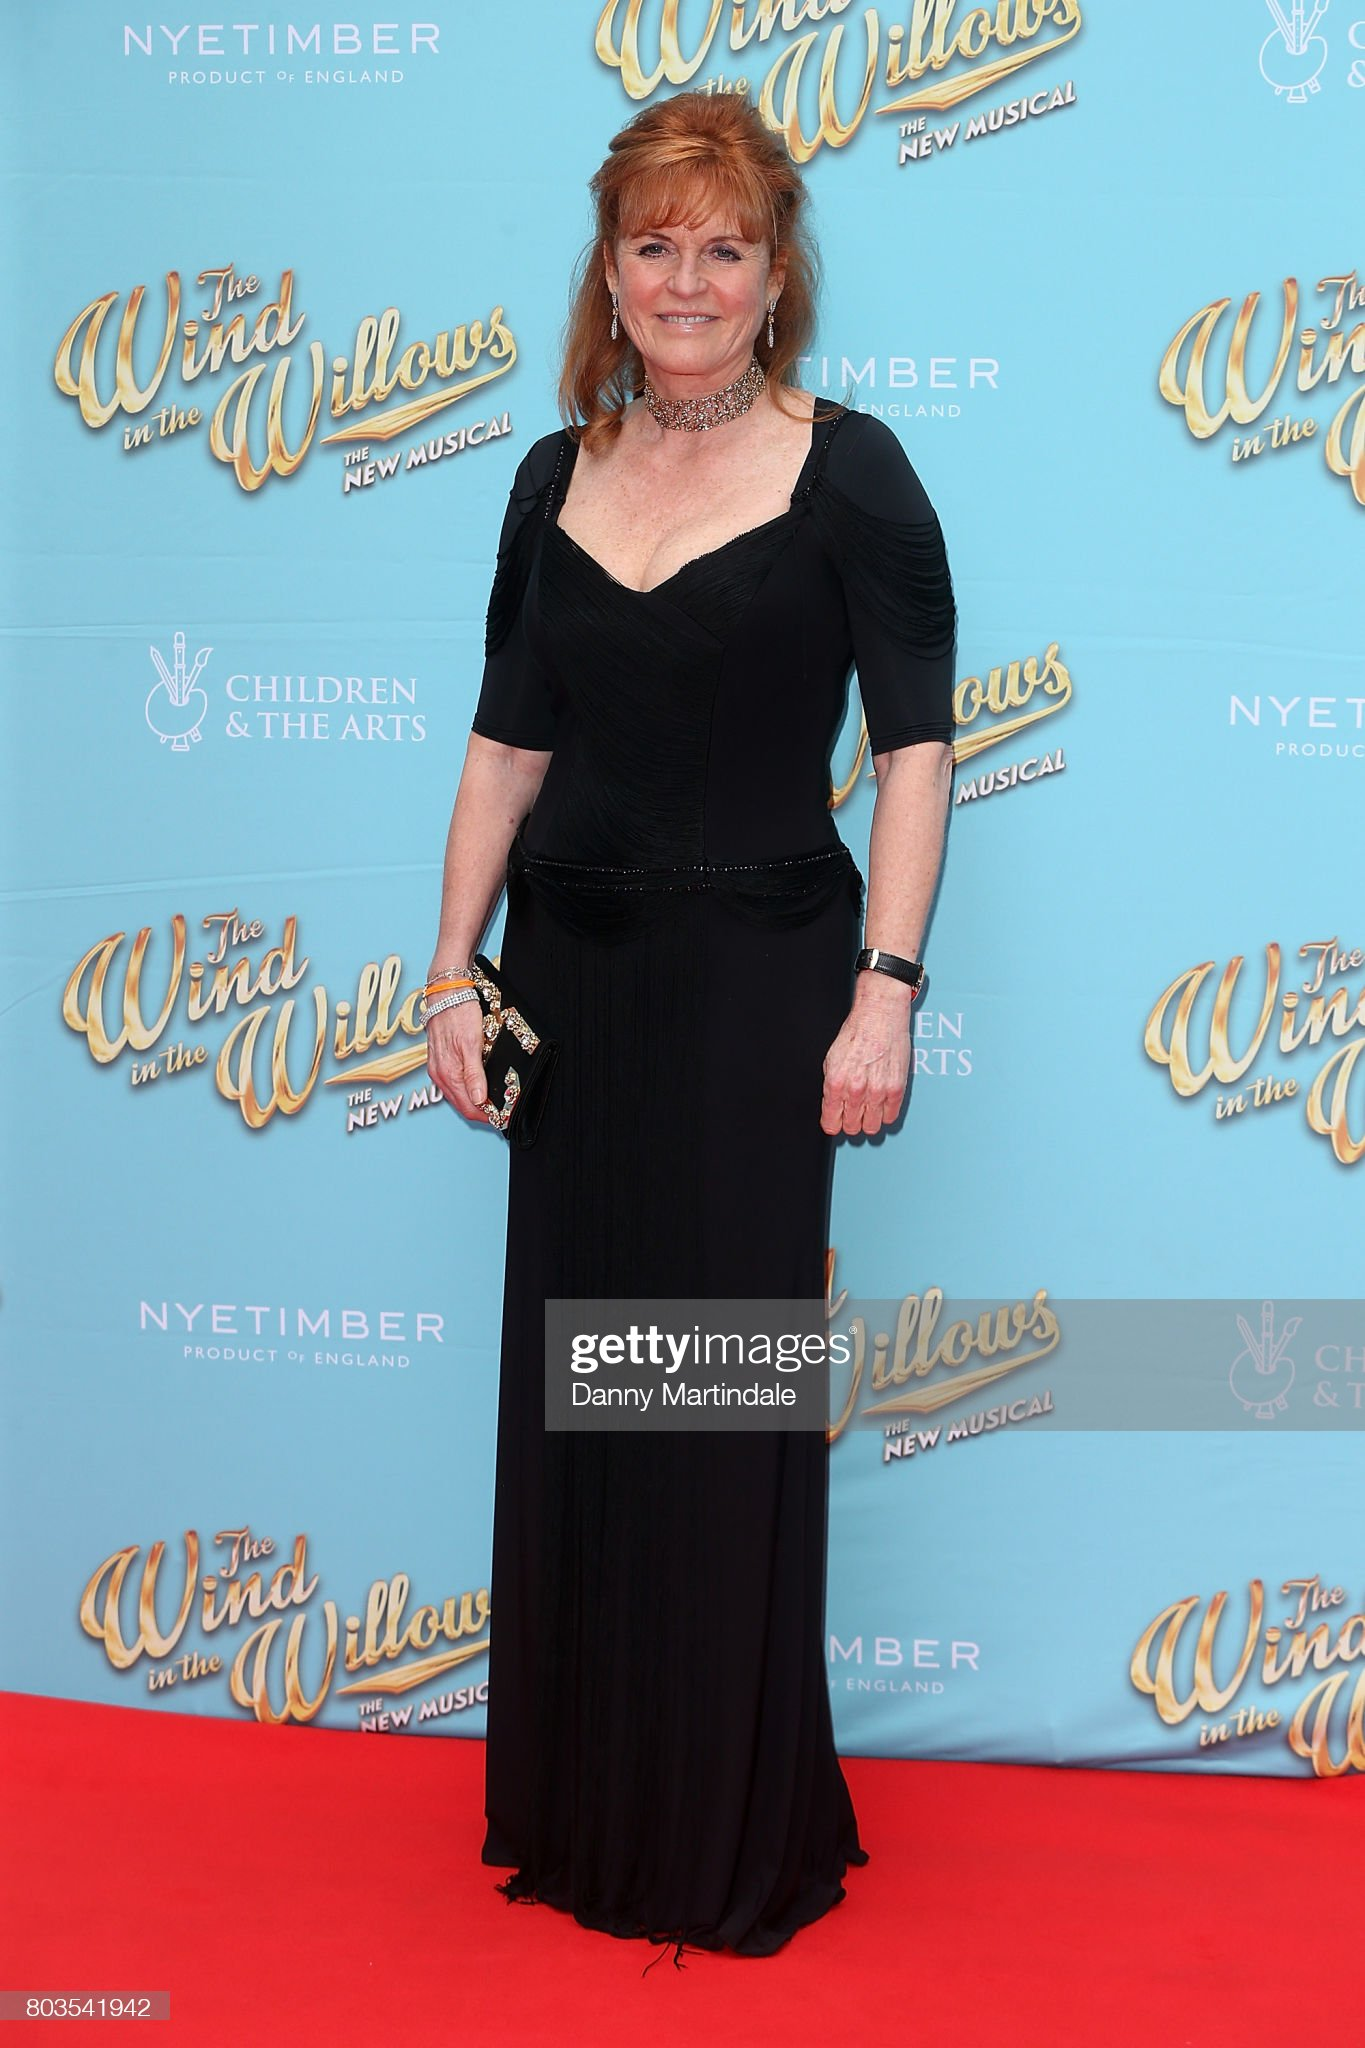 """The Gala Performance Of """"Wind In The Willows"""" - Red Carpet Arrivals : News Photo"""